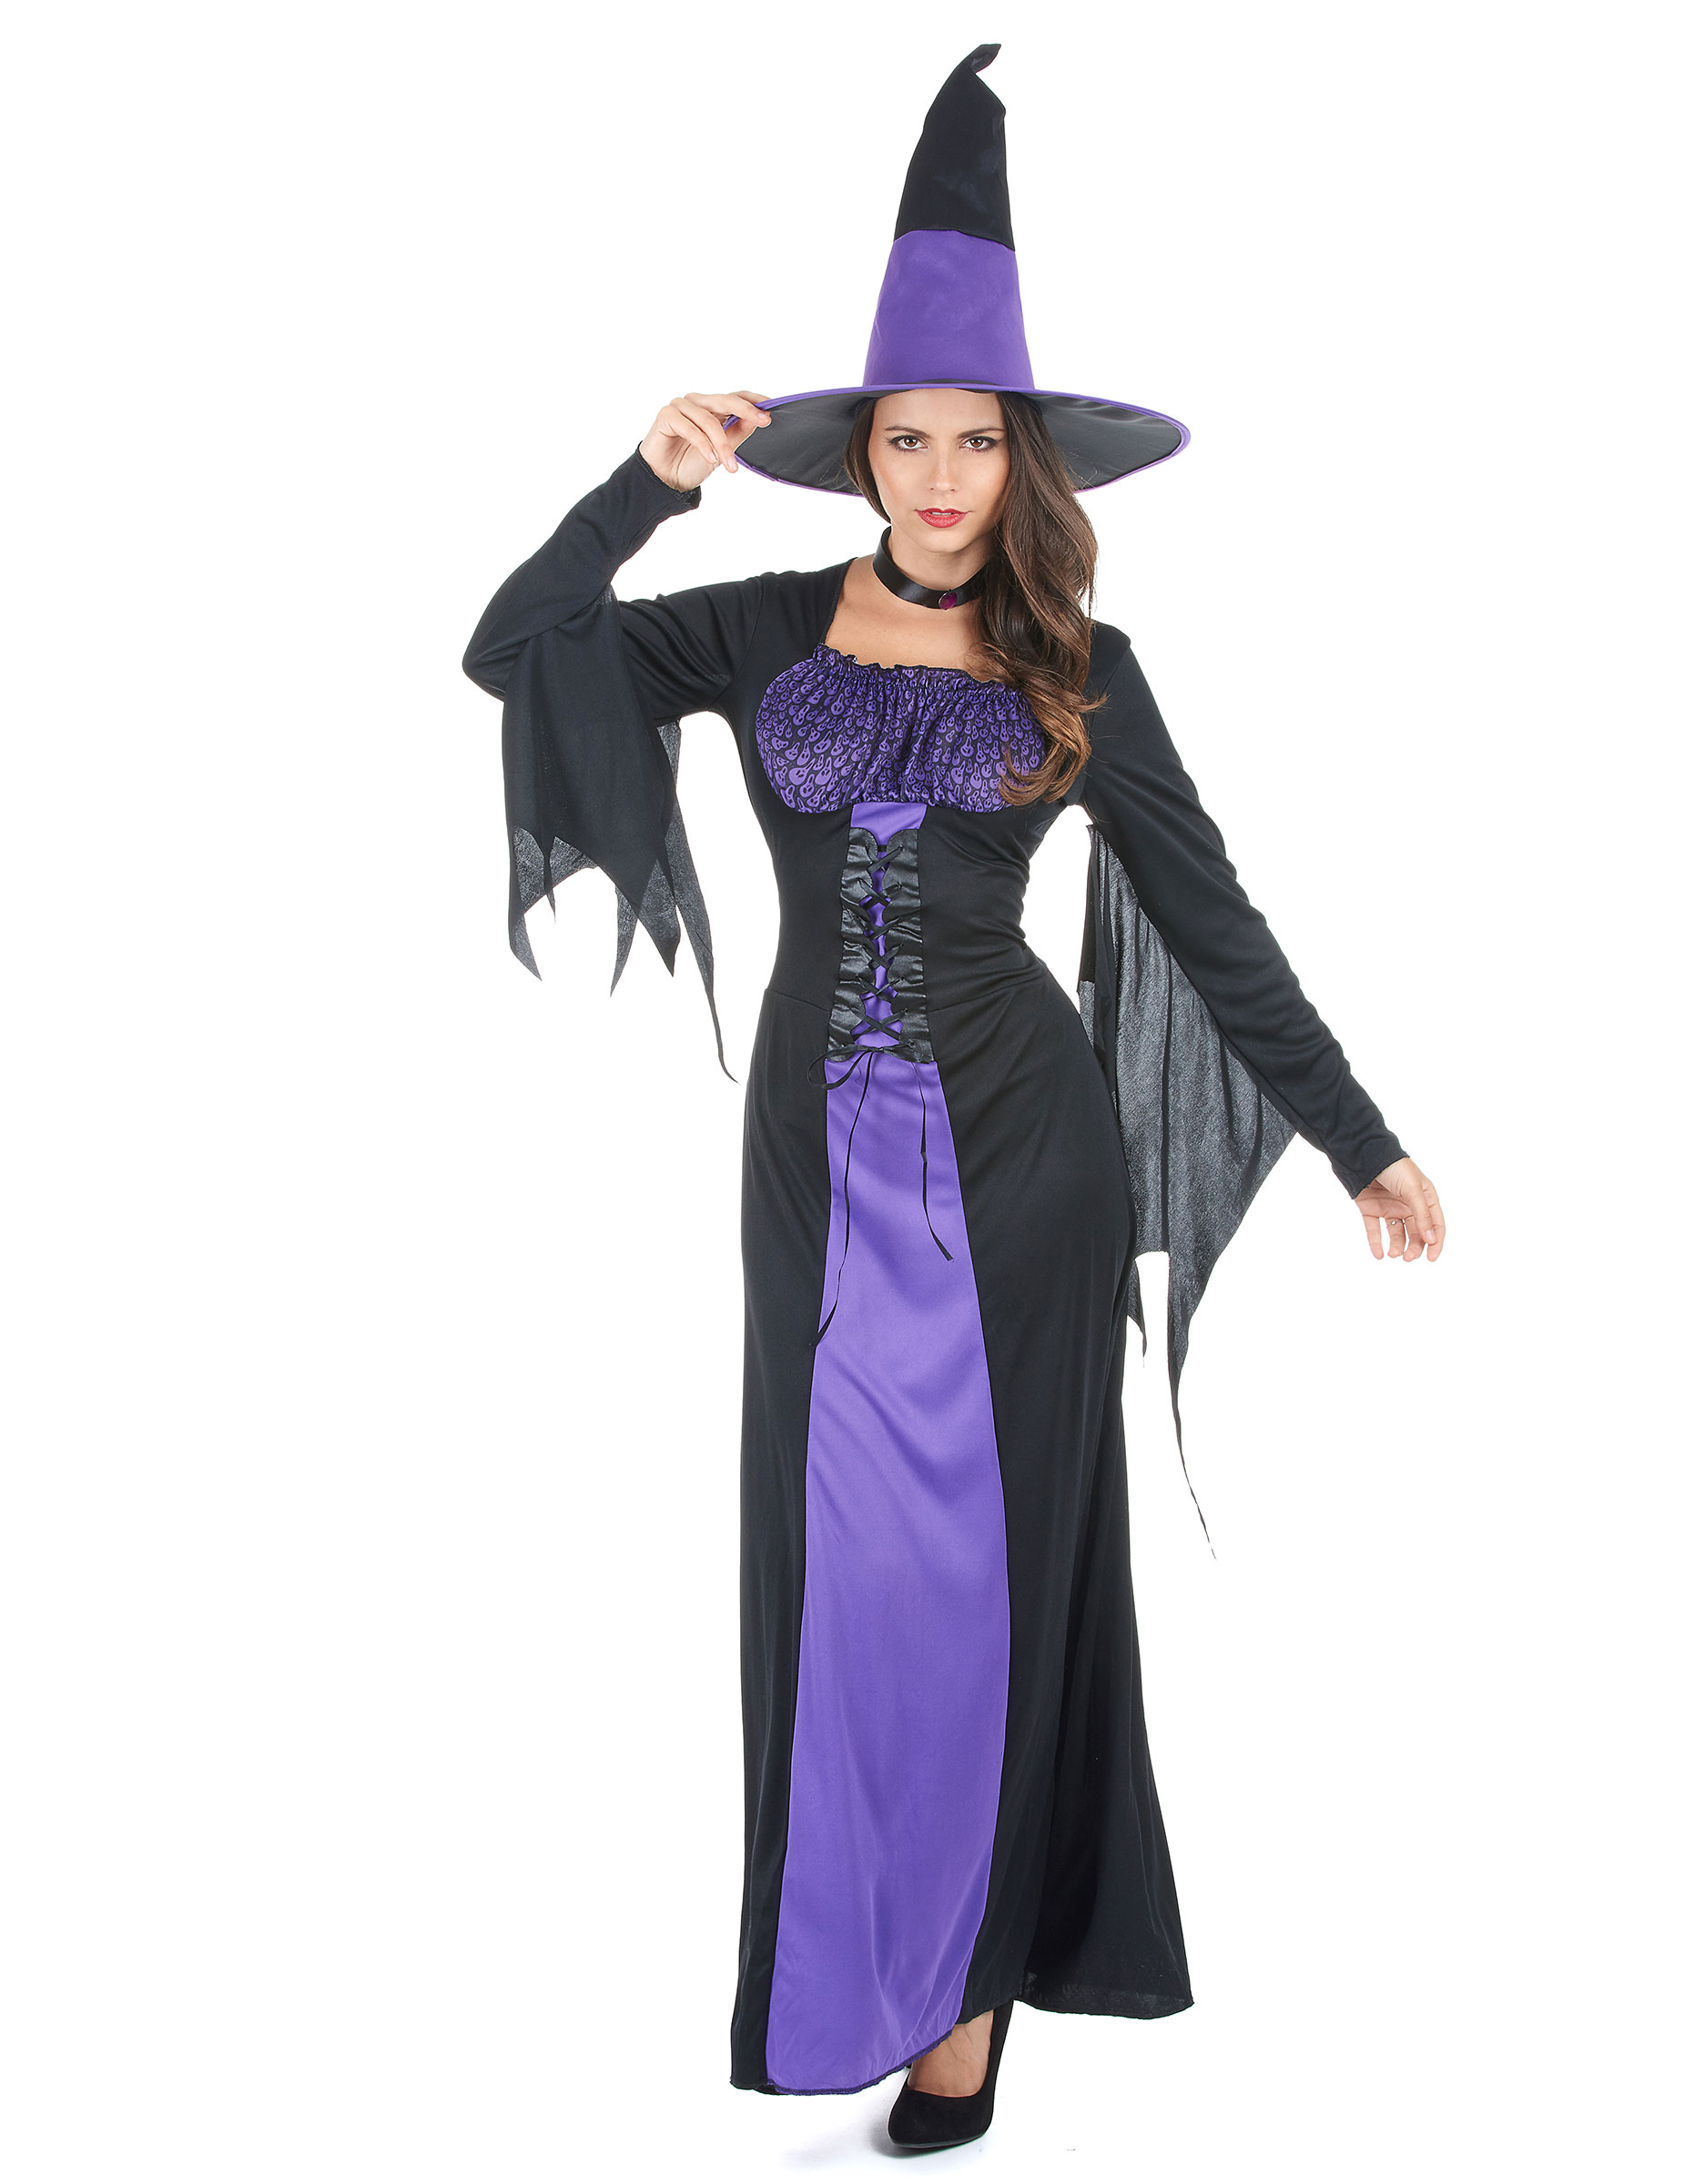 D guisement sorci re femme halloween deguise toi achat de d guisements adultes - Deguisement halloween adulte ...